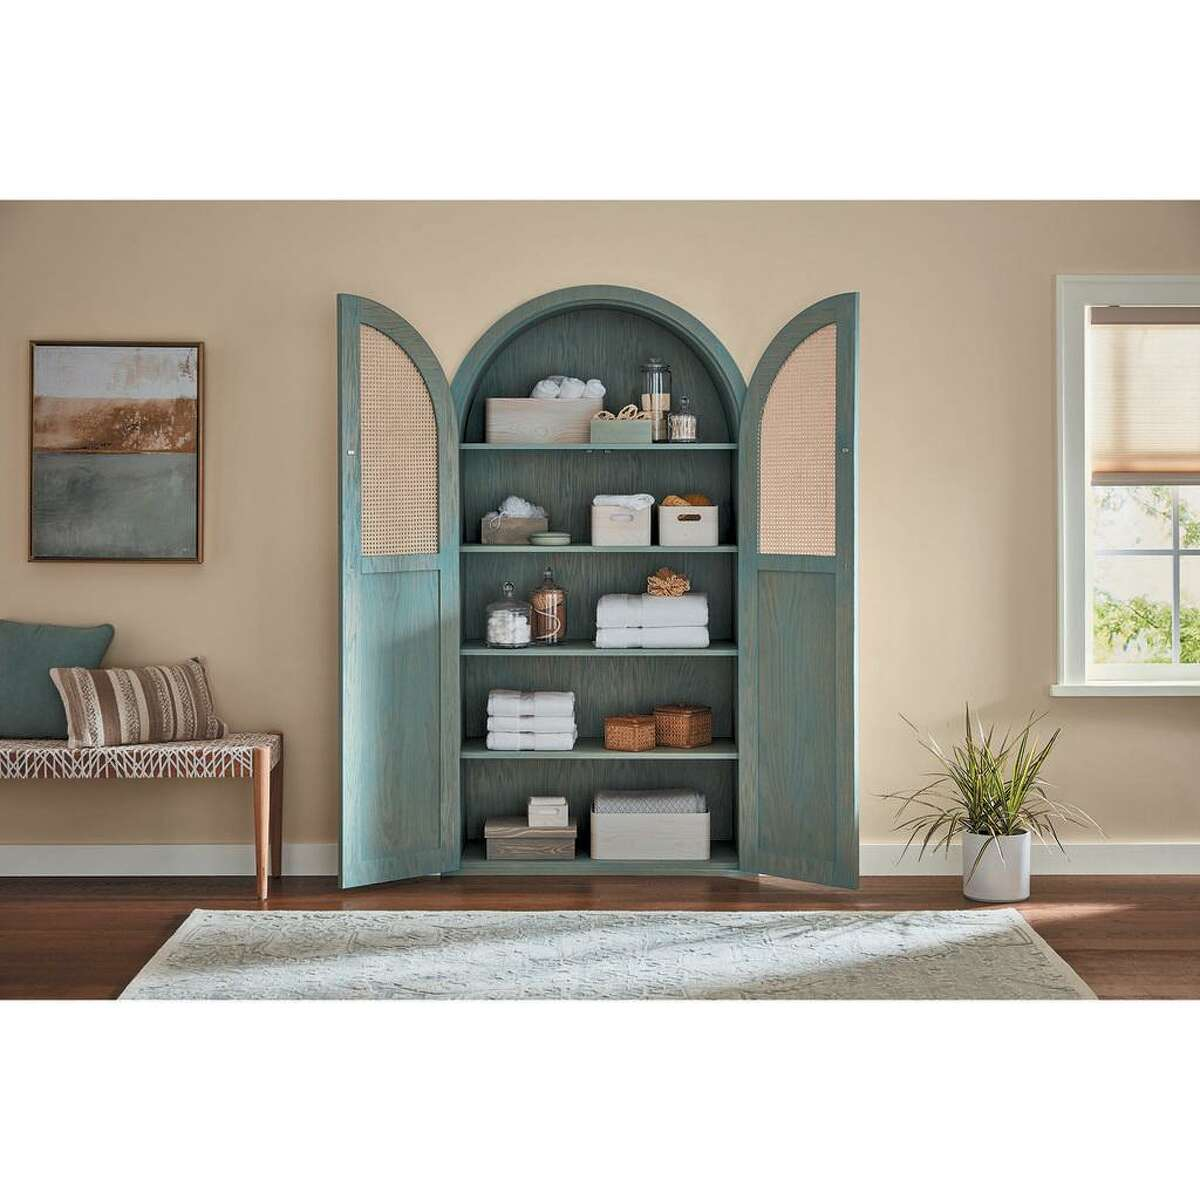 """Minwax has named """"Vintage Blue,"""" a soft blue-green stain, as its first Color of the Year."""